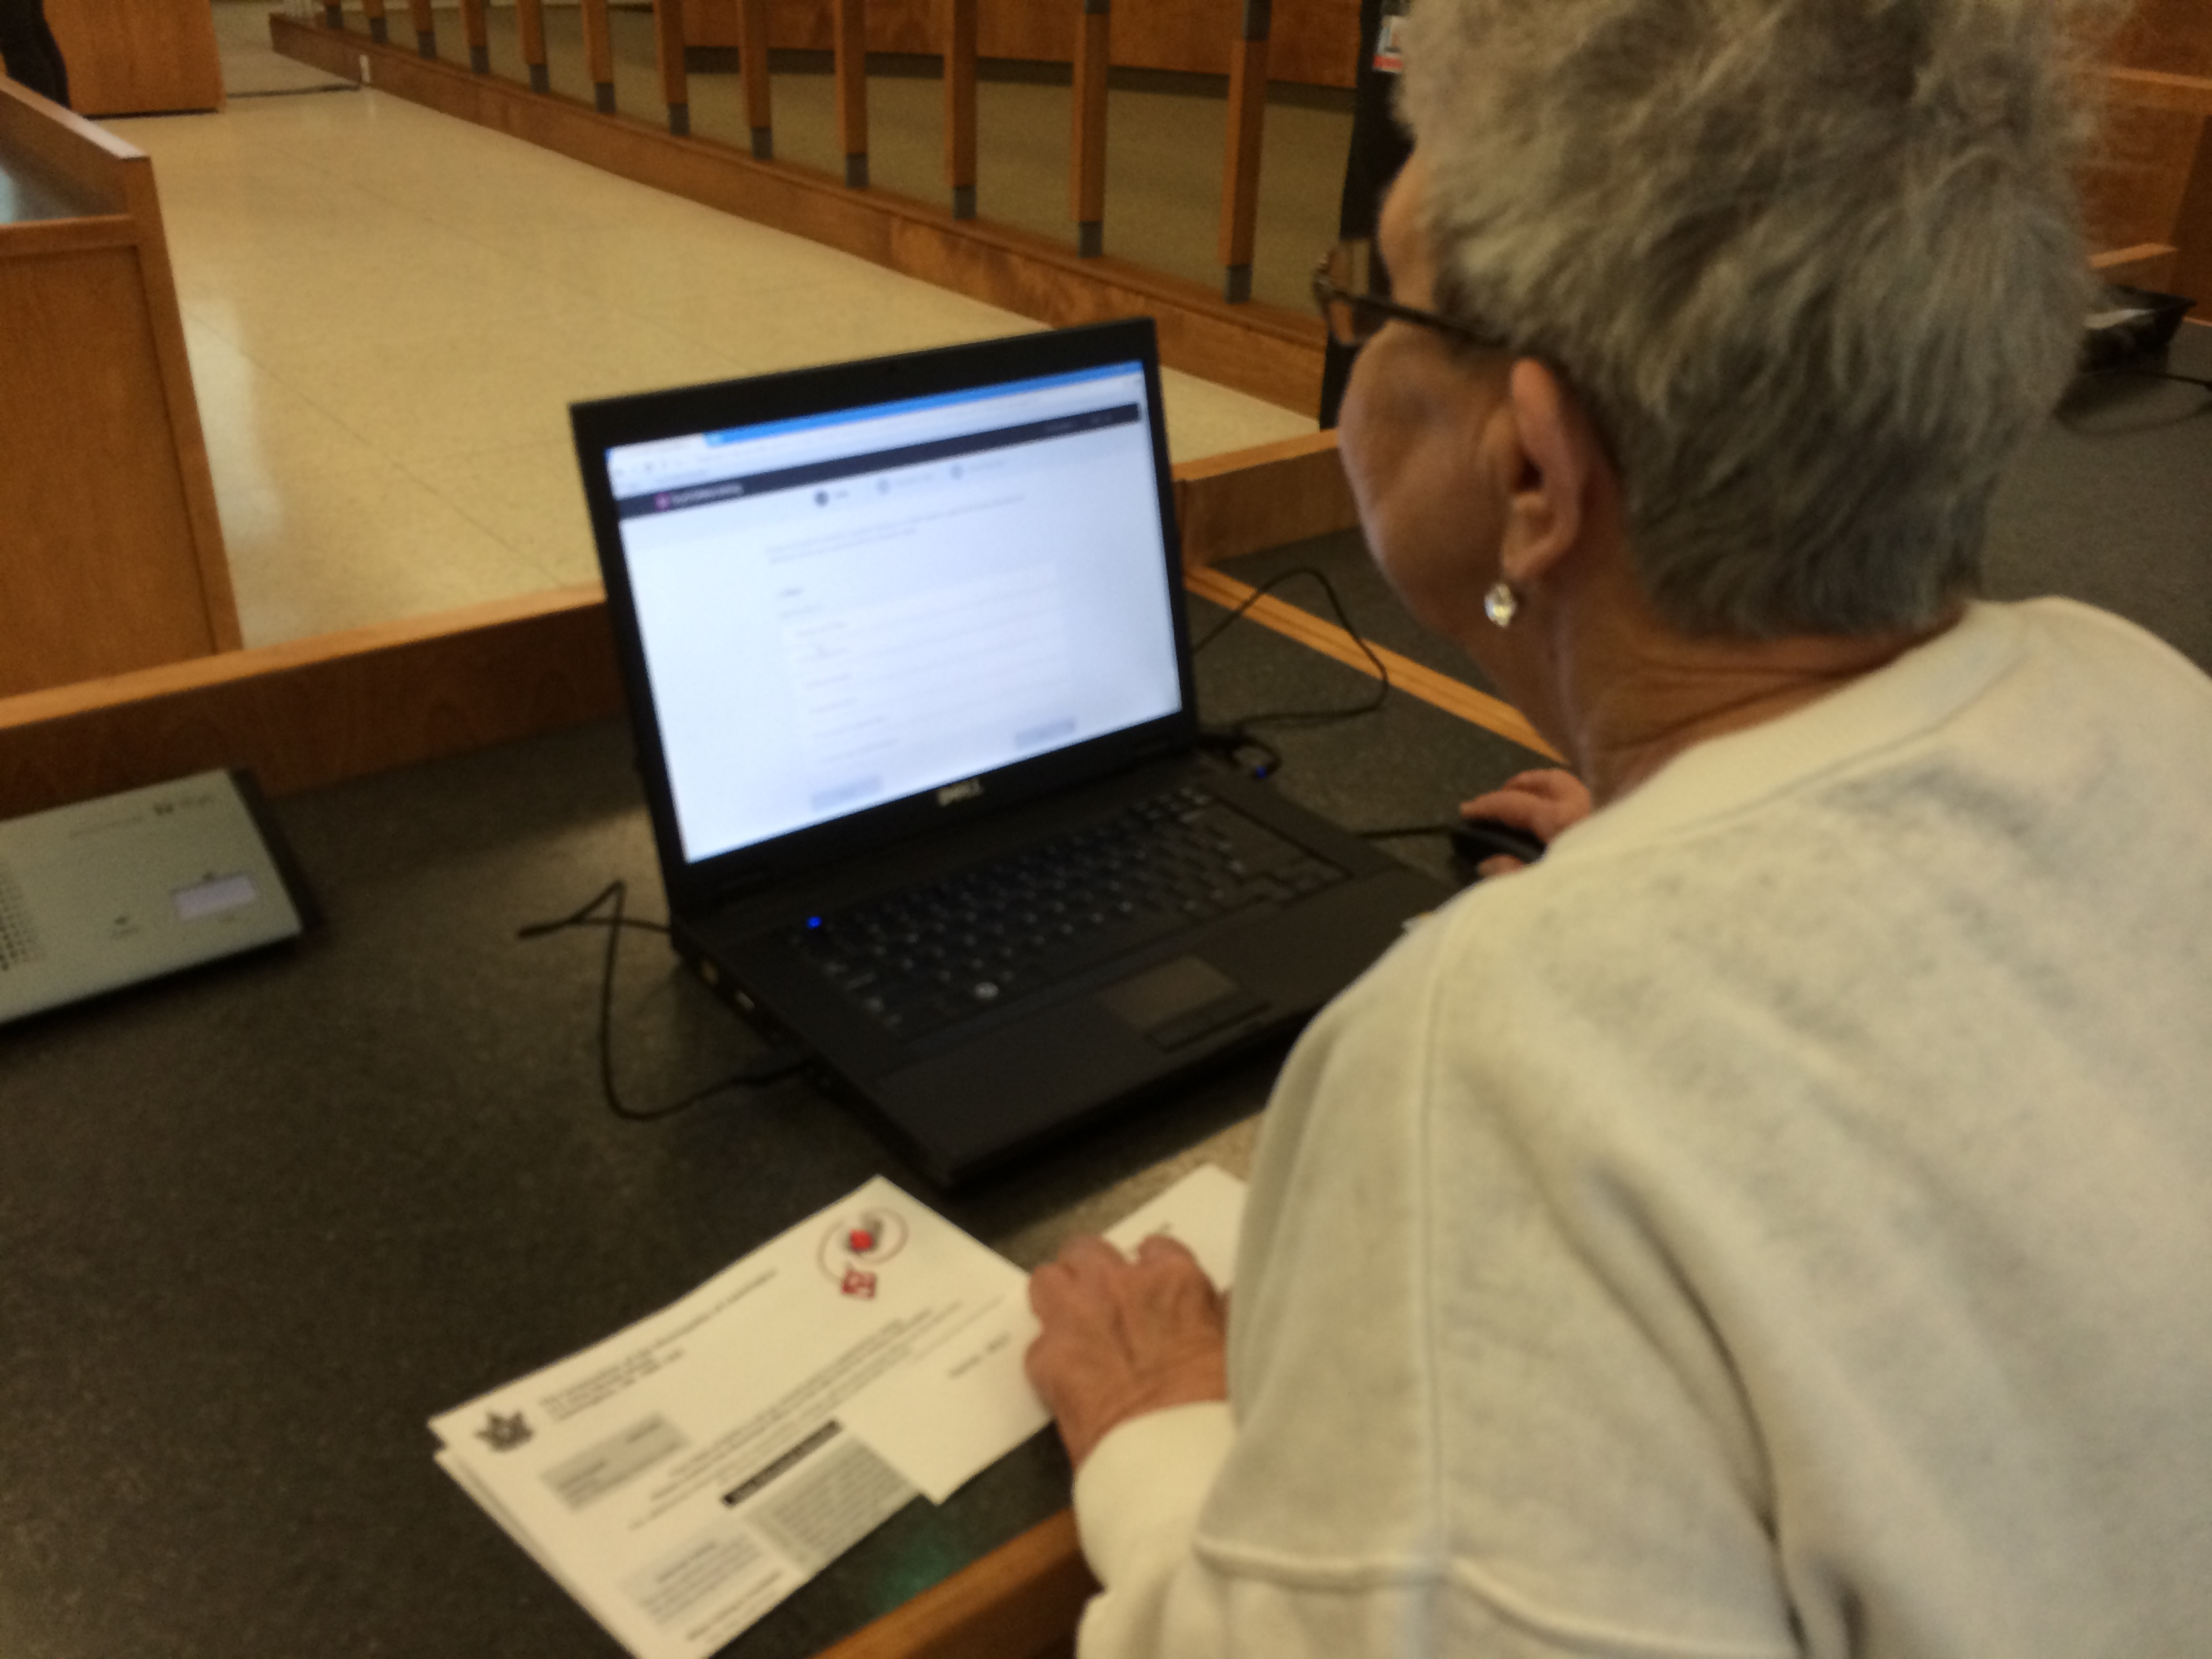 A Leamington resident tries her hand at the new online voting system the municipality will use for the upcoming 2014 election. Photo taken August 27, 2014. (Photo by Ricardo Veneza)